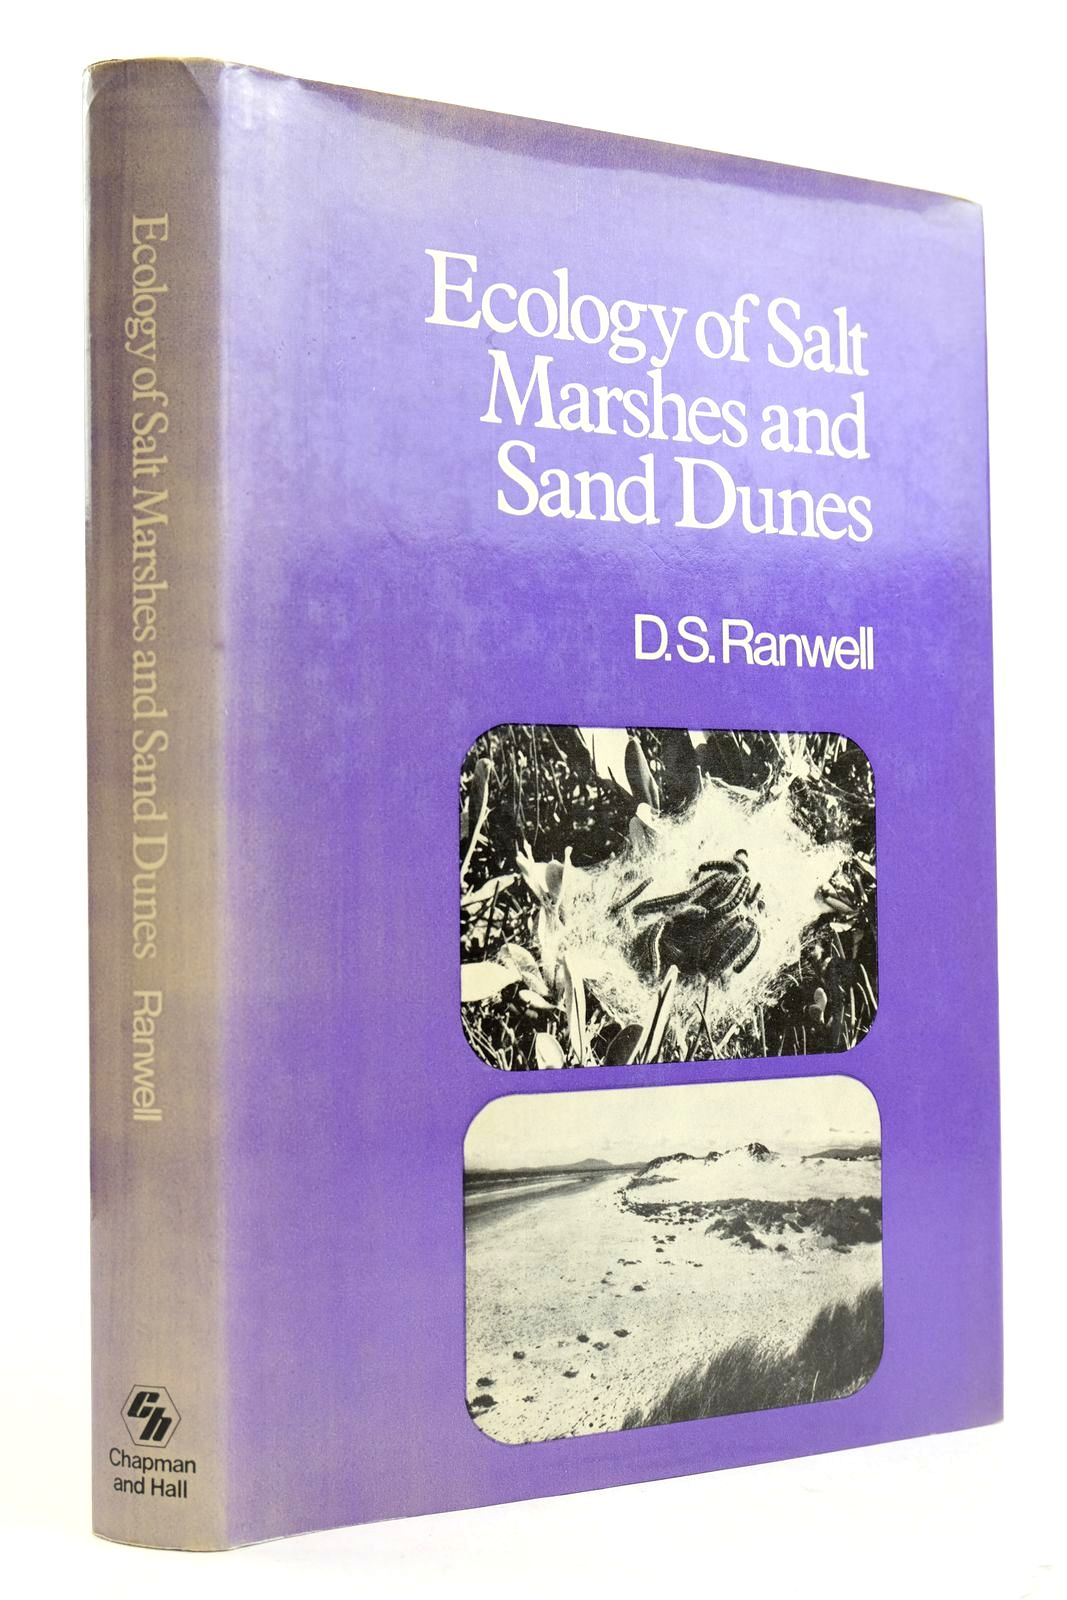 Photo of ECOLOGY OF SALT MARSHES AND SAND DUNES- Stock Number: 2132736